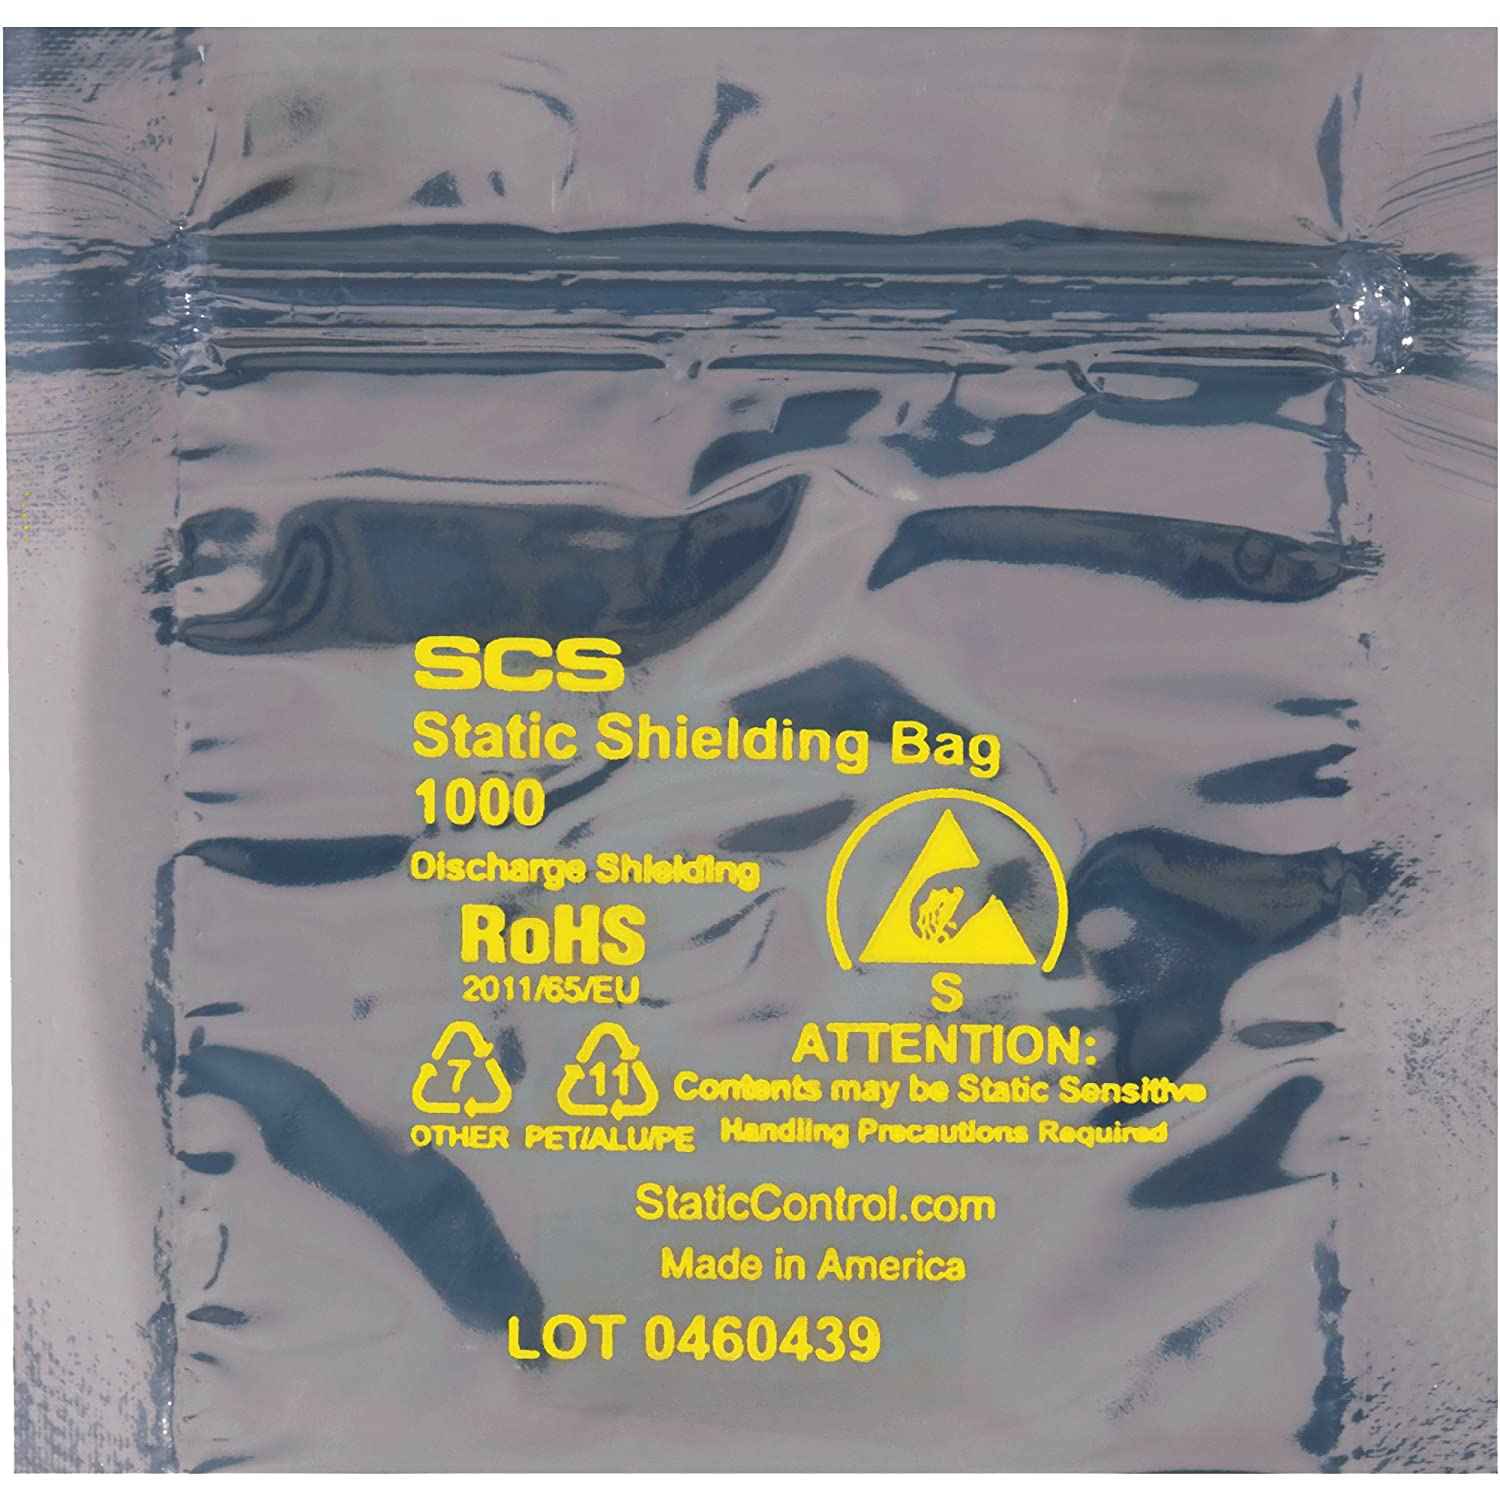 Mail order cheap Reclosable Static Shielding Bags 6 Case Max 82% OFF x 100 Transparent 6